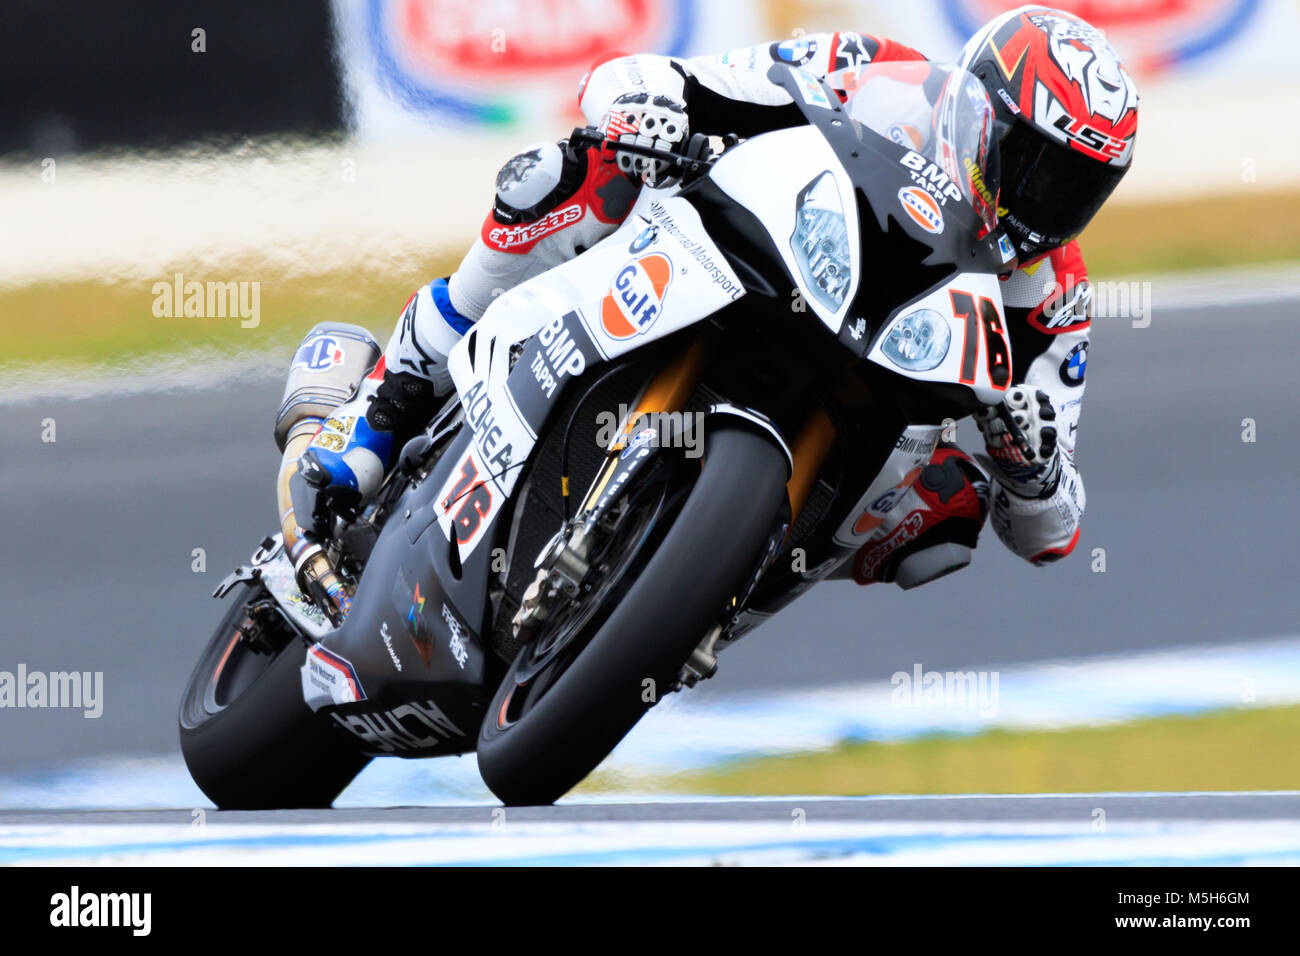 MELBOURNE, AUSTRALIA – FEBRUARY 23: Loris Baz 76 riding for GULF ALTHEA BMW Racing Team in Superpole 1 at the 2018 Stock Photo